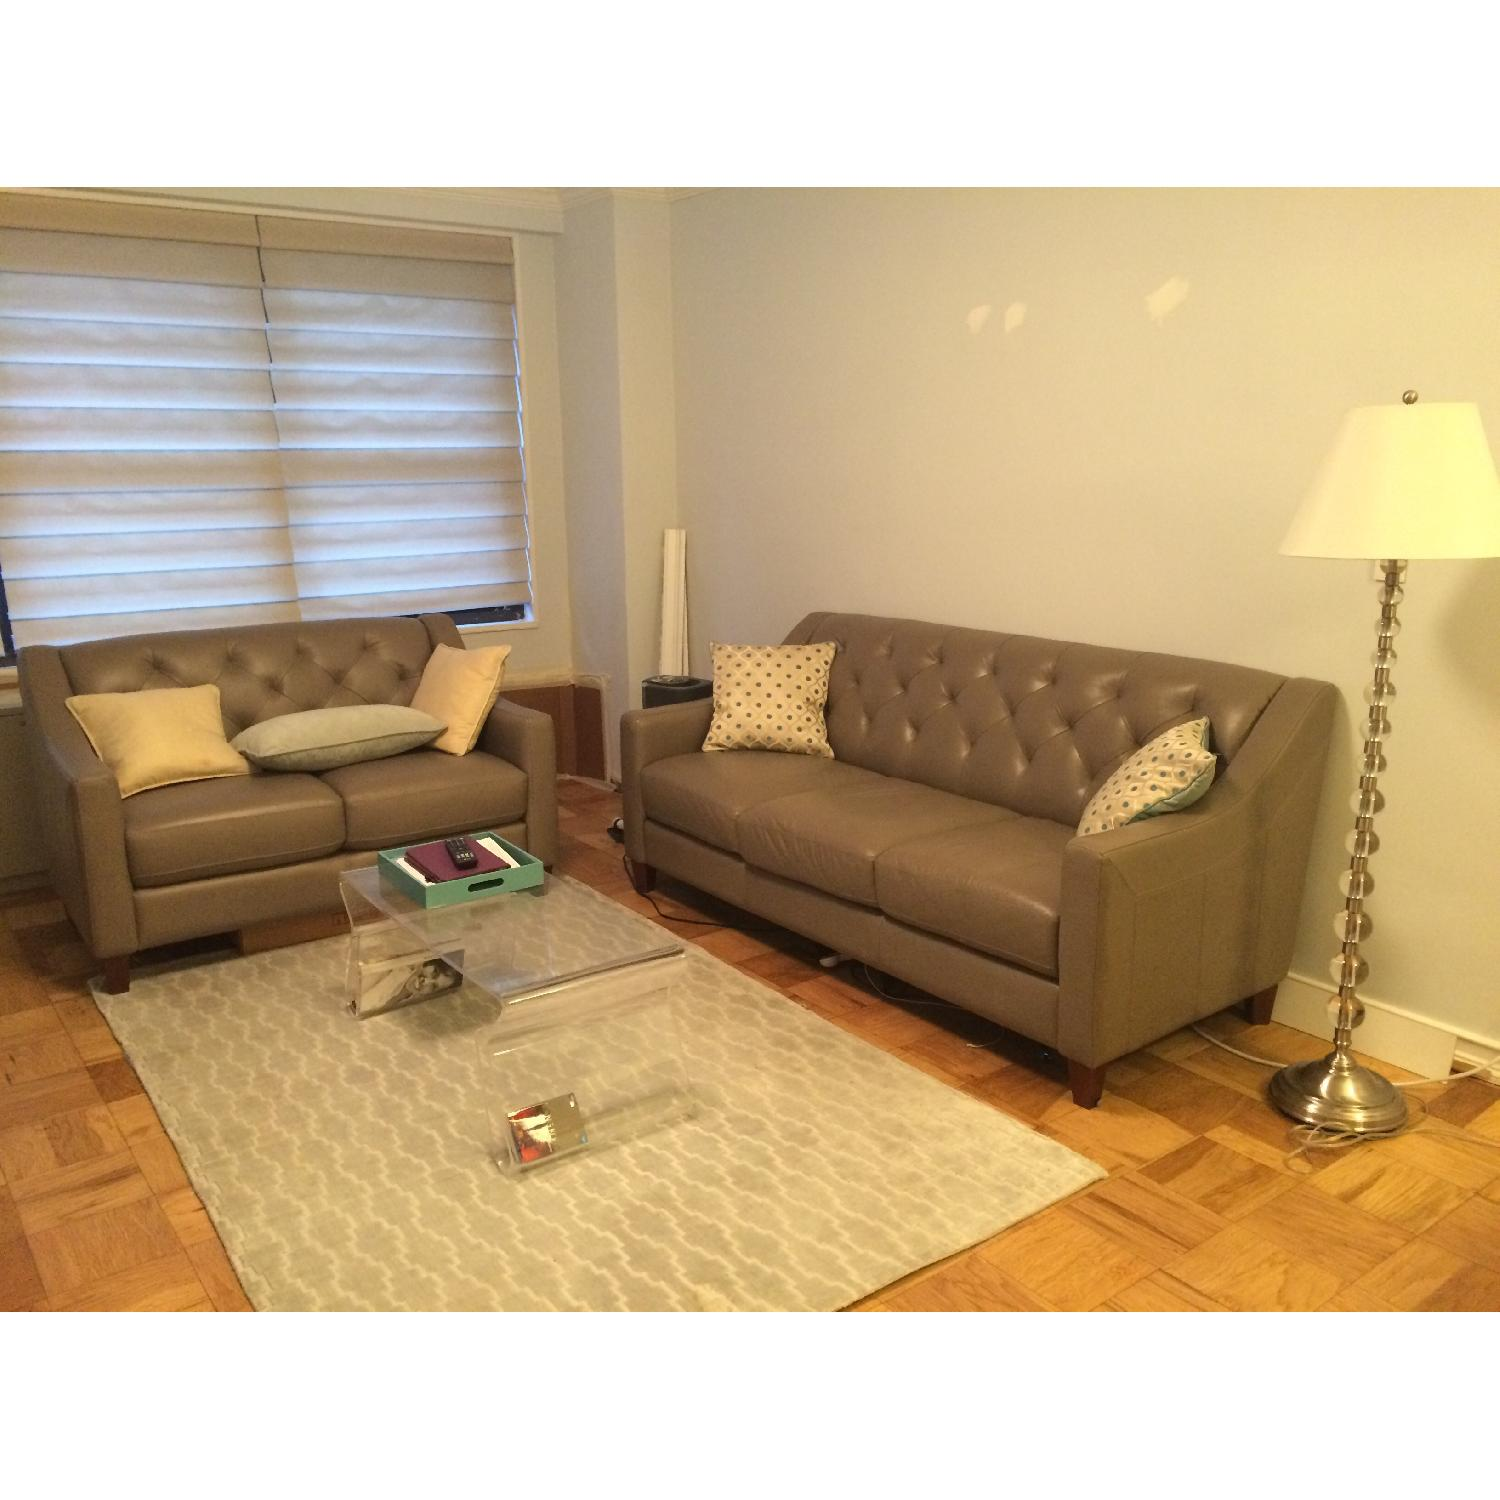 Neutral Gray Tone Leather Couch + Matching Love Seat - image-3